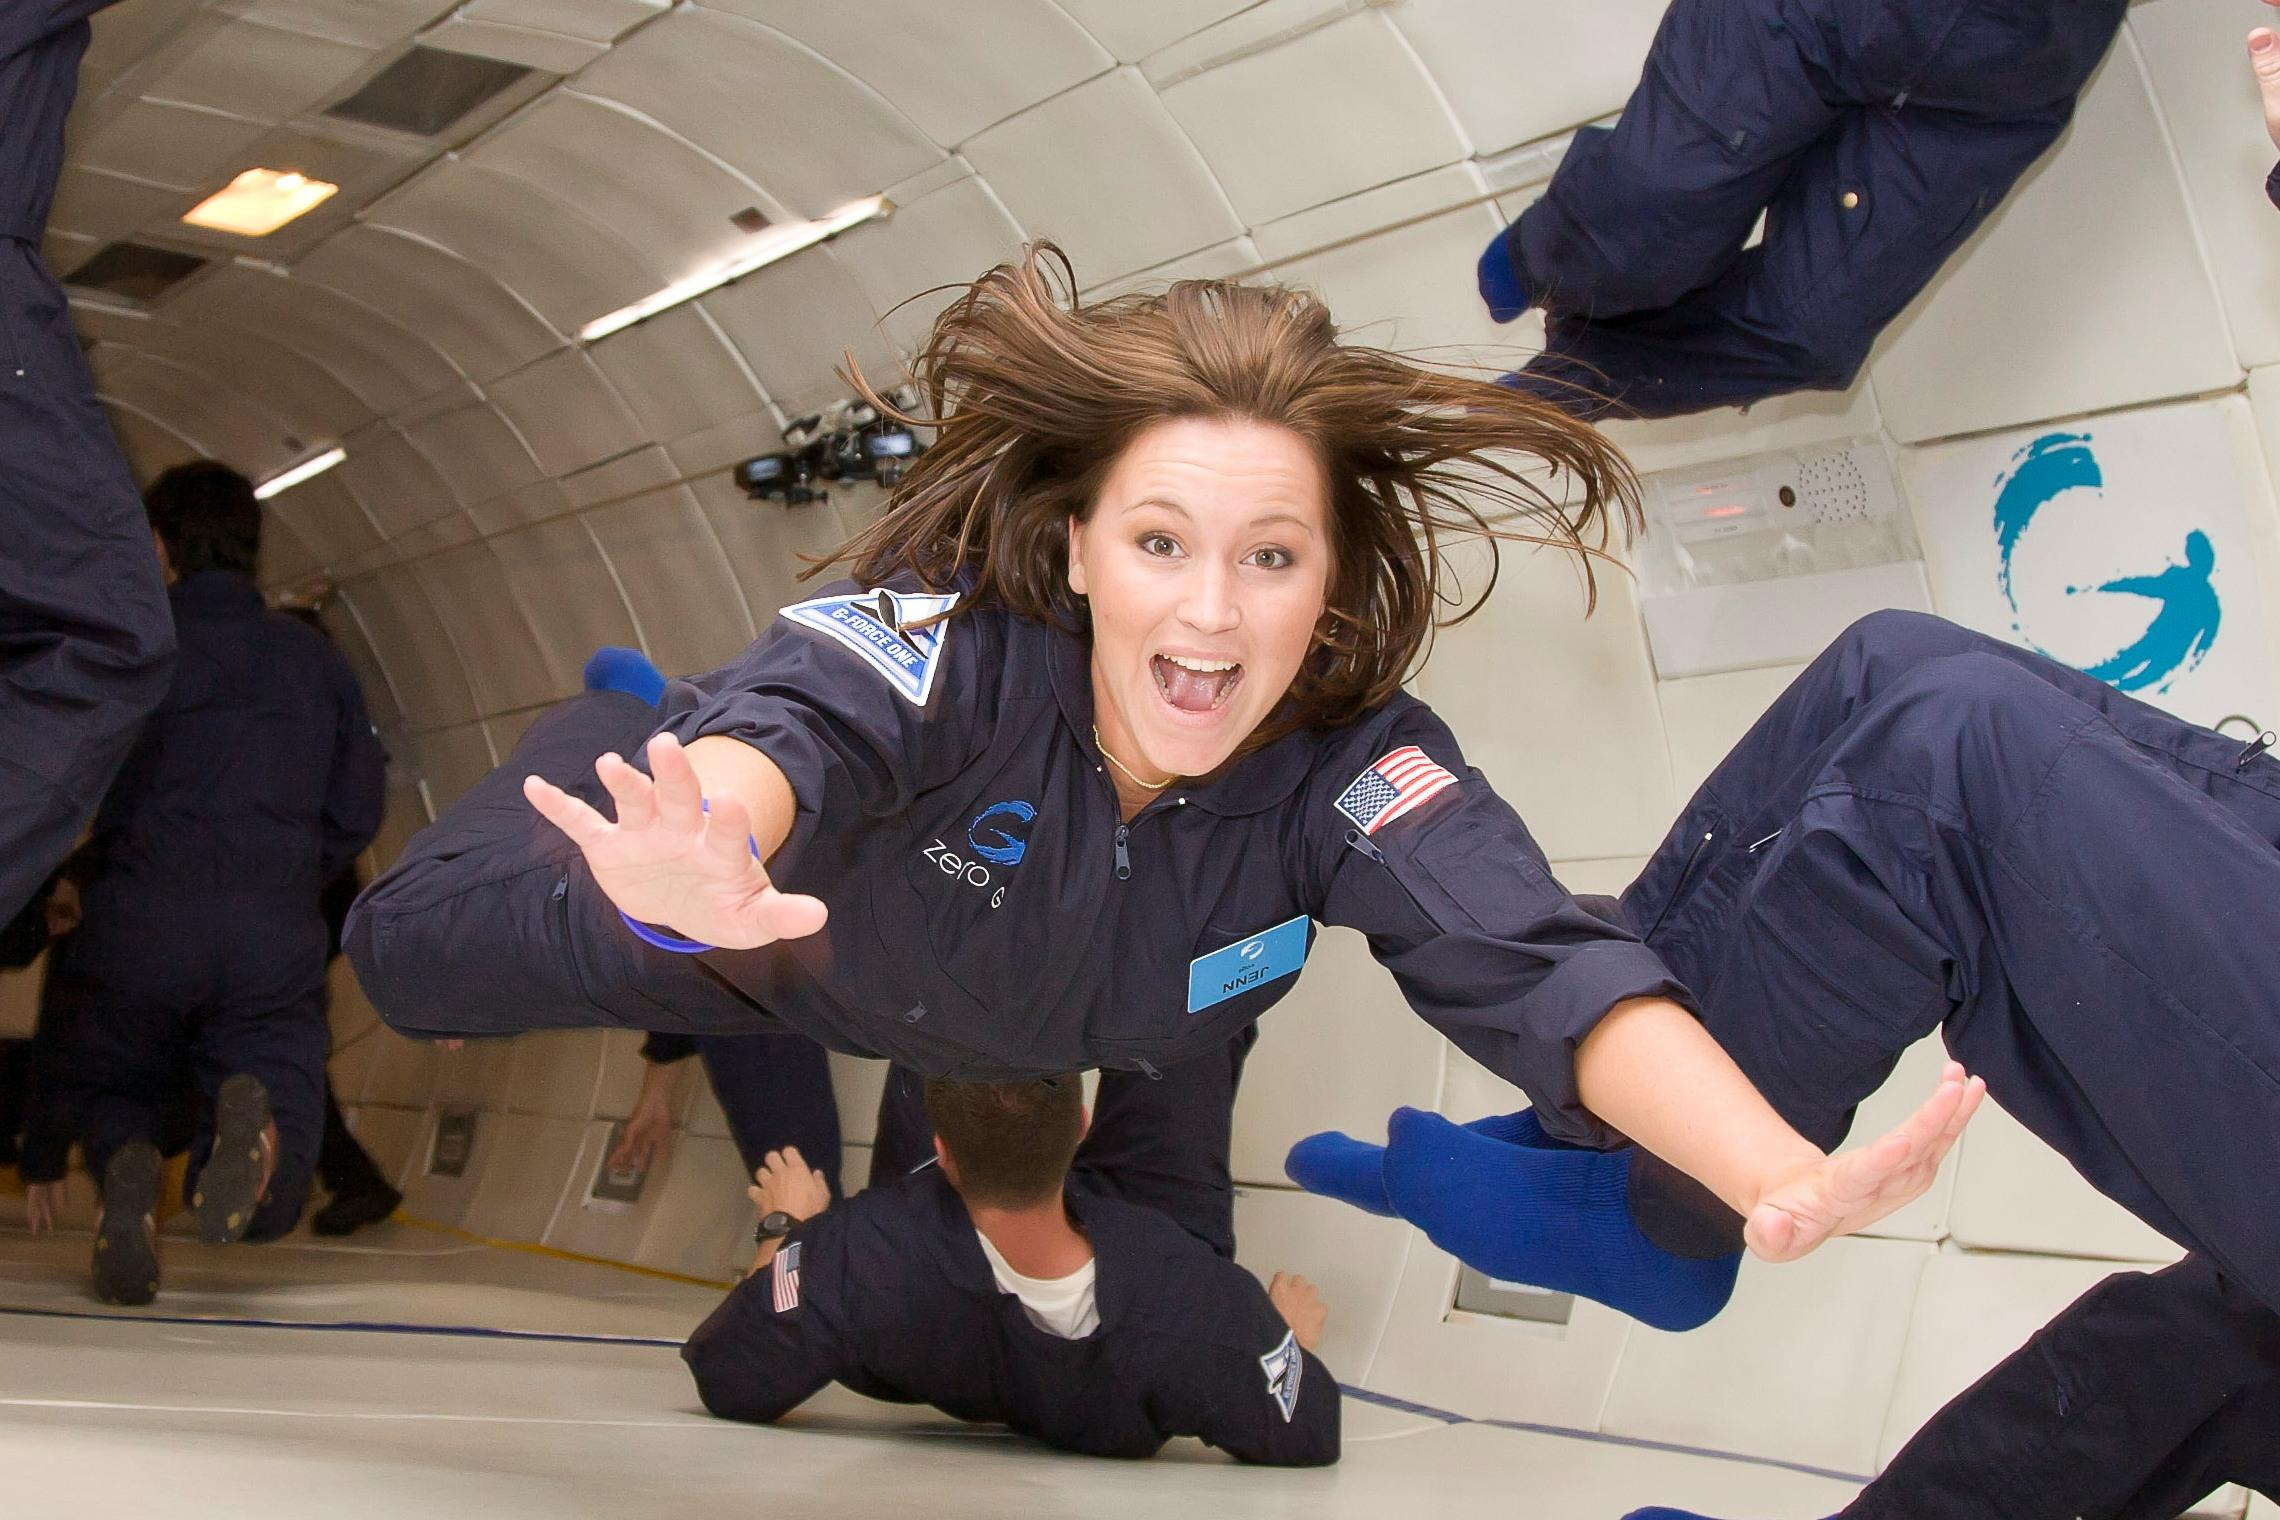 inside-zero-g-floating-4